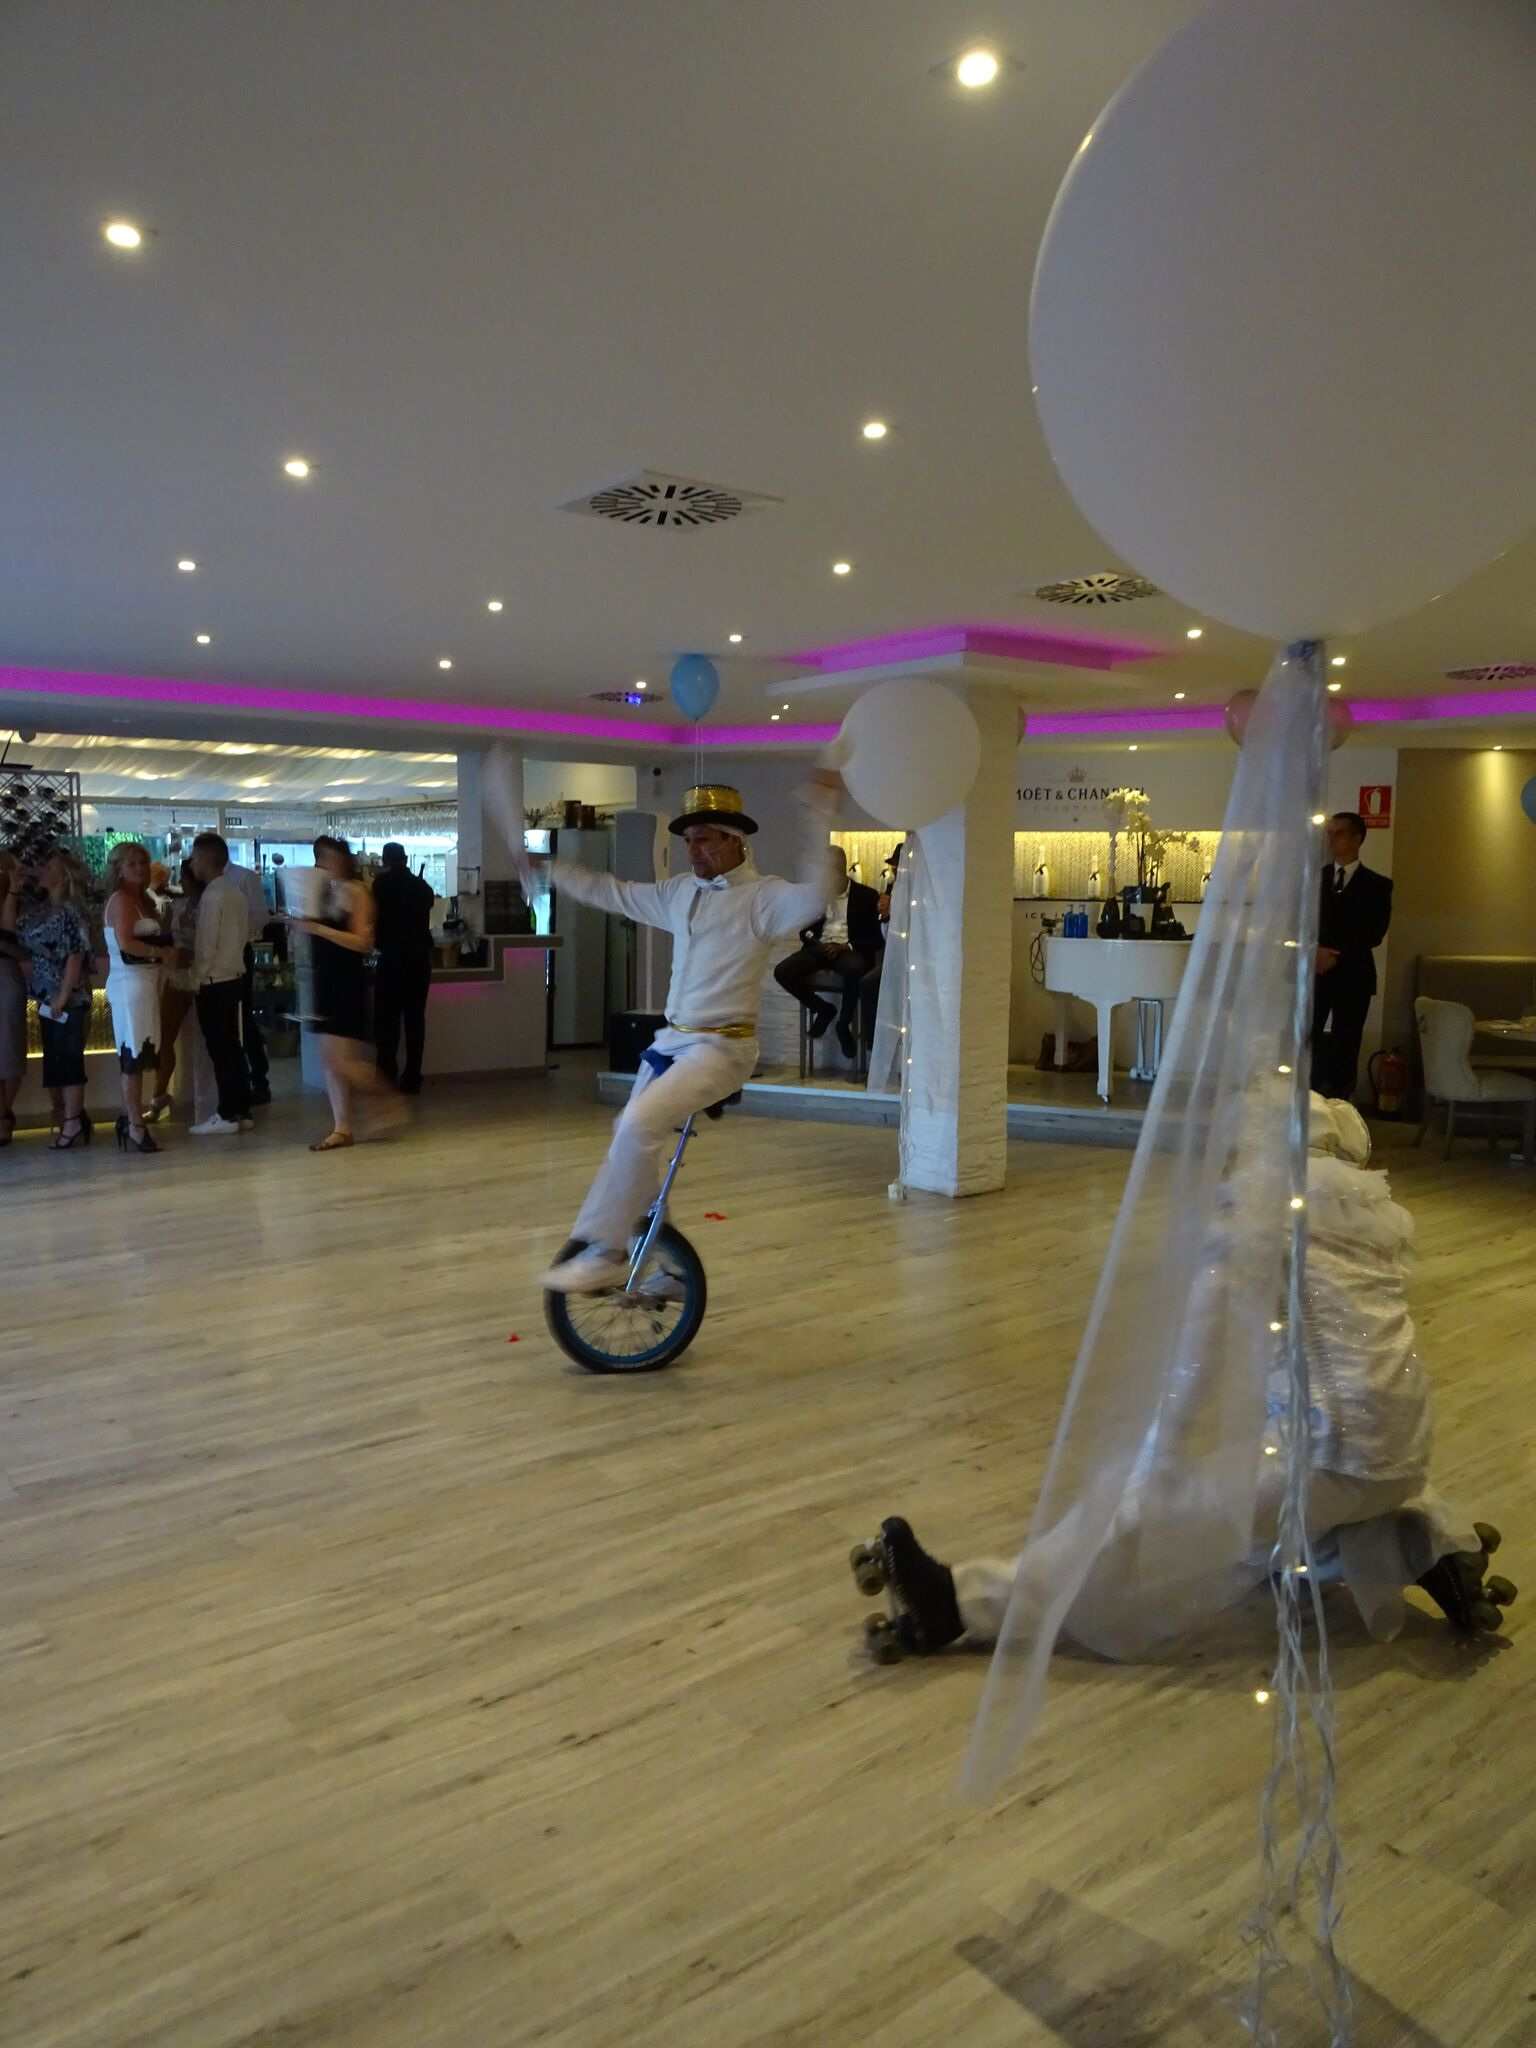 White outfit. Unicycle